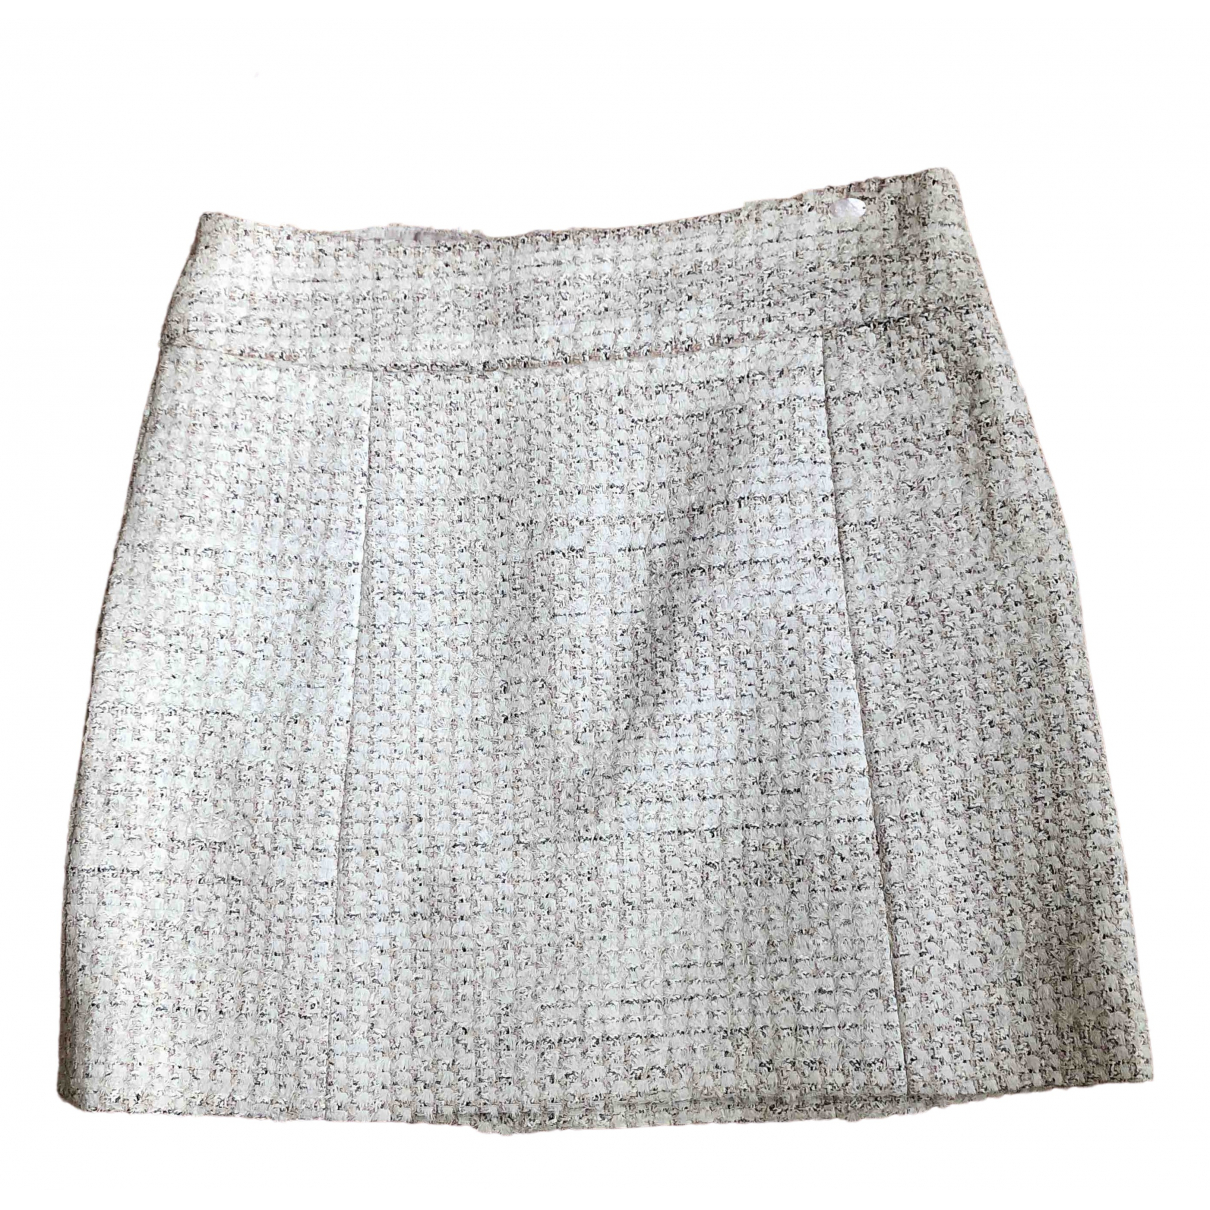 Chanel \N Ecru Tweed skirt for Women 38 FR